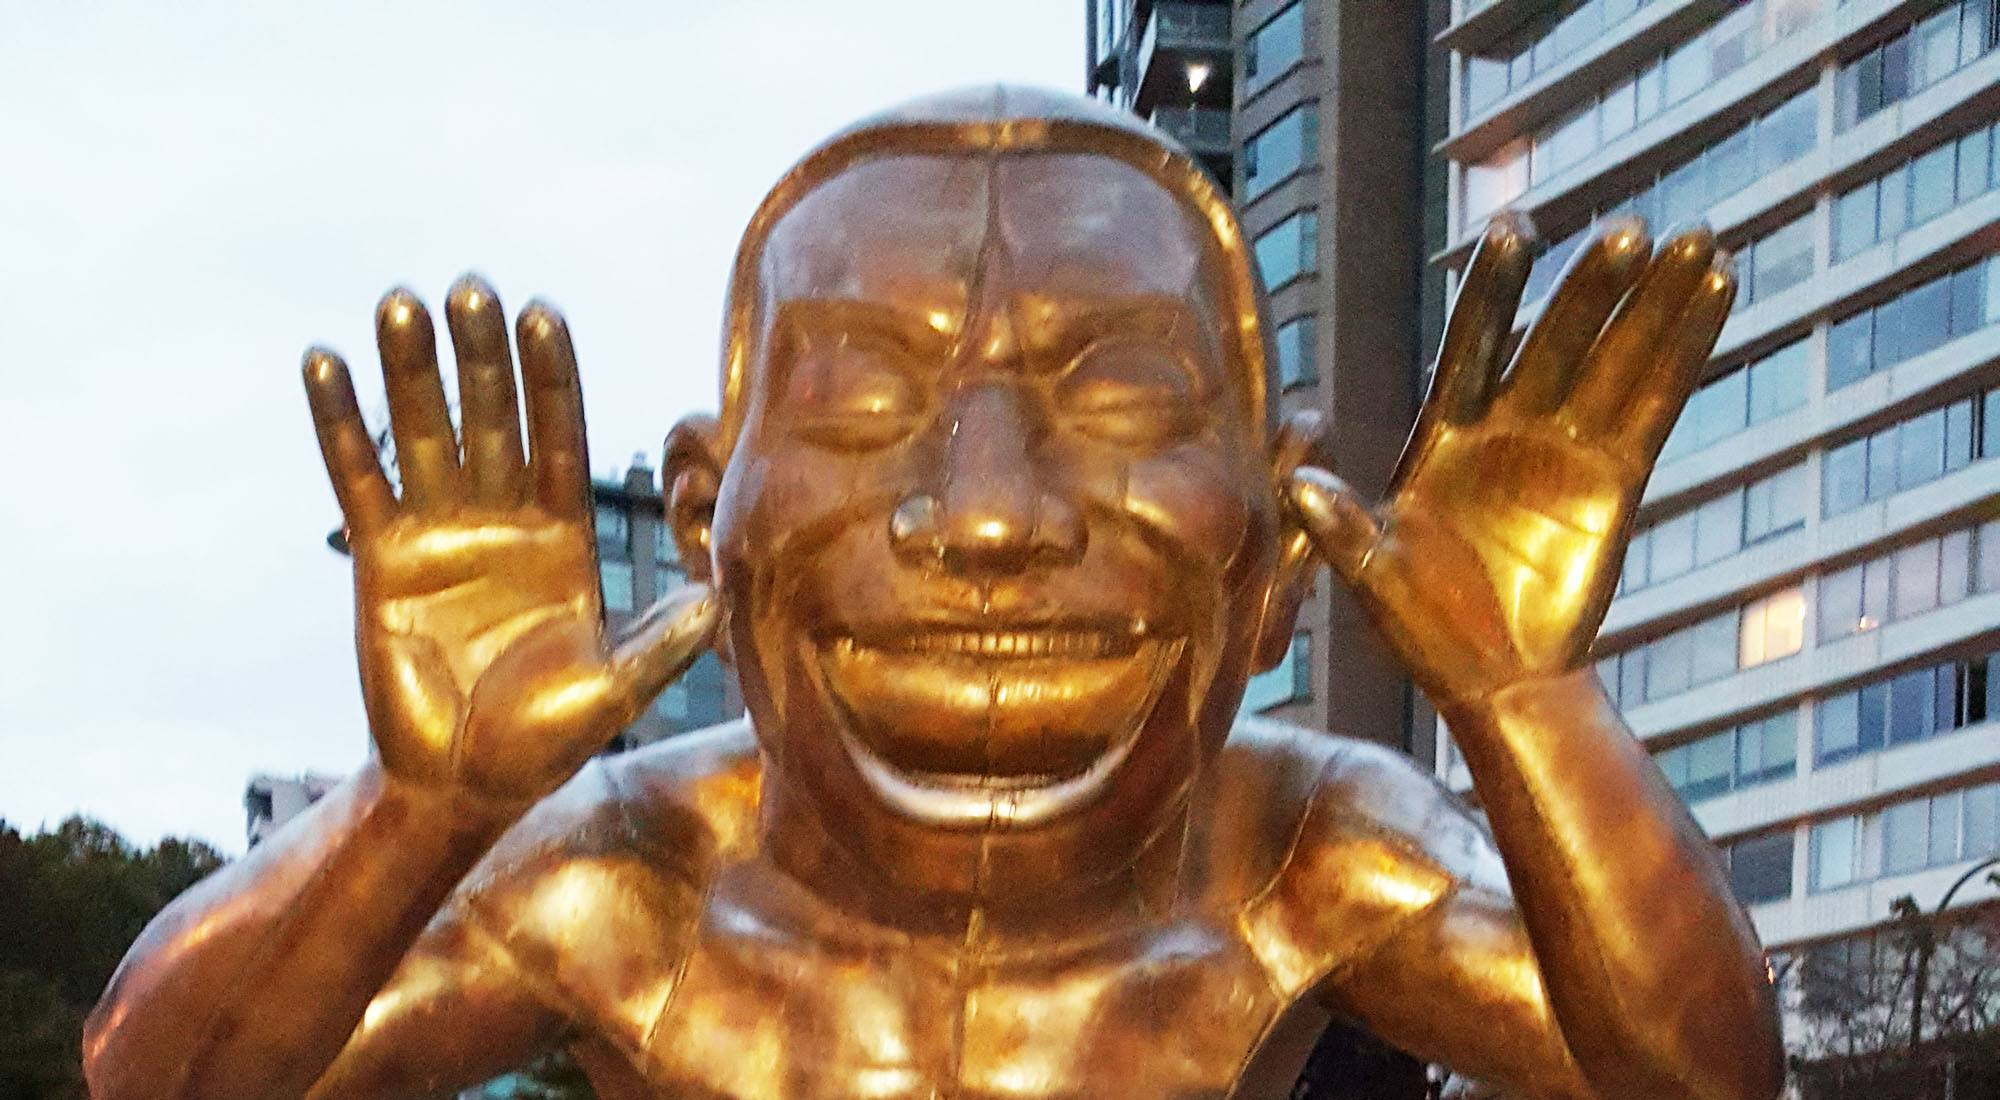 One of vancouvers laughing statues has been fitted with jeans mago 3d jeans feature